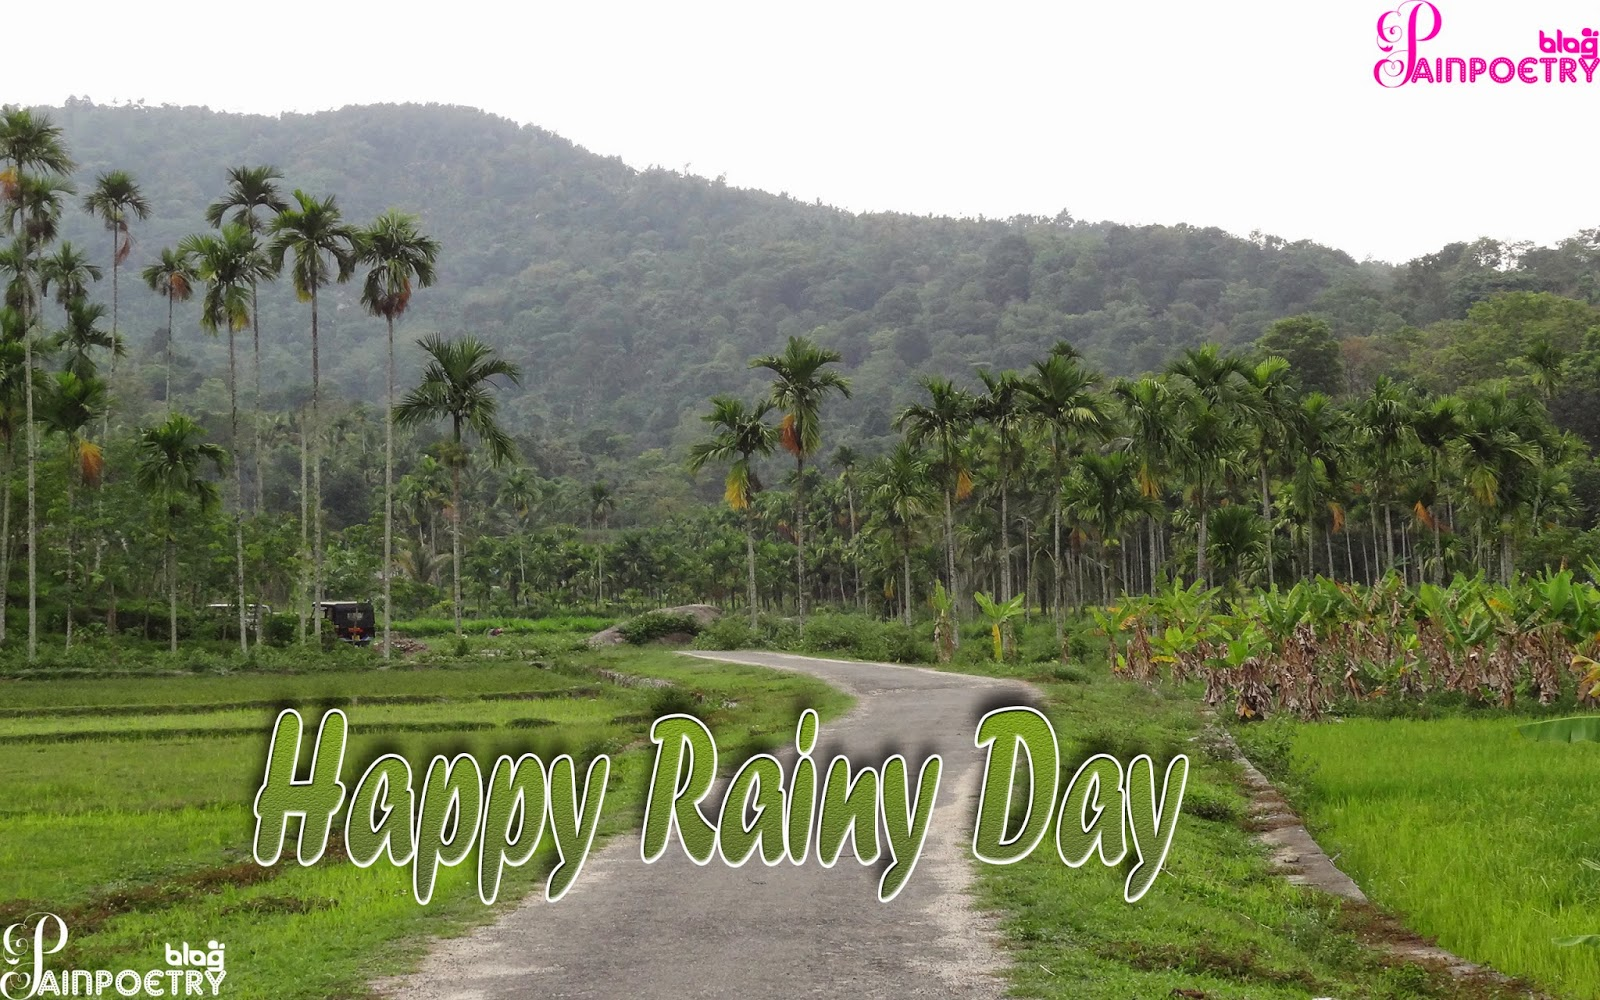 Happy-Rainy-Day-Wallpaper-Image-Photo-Wide